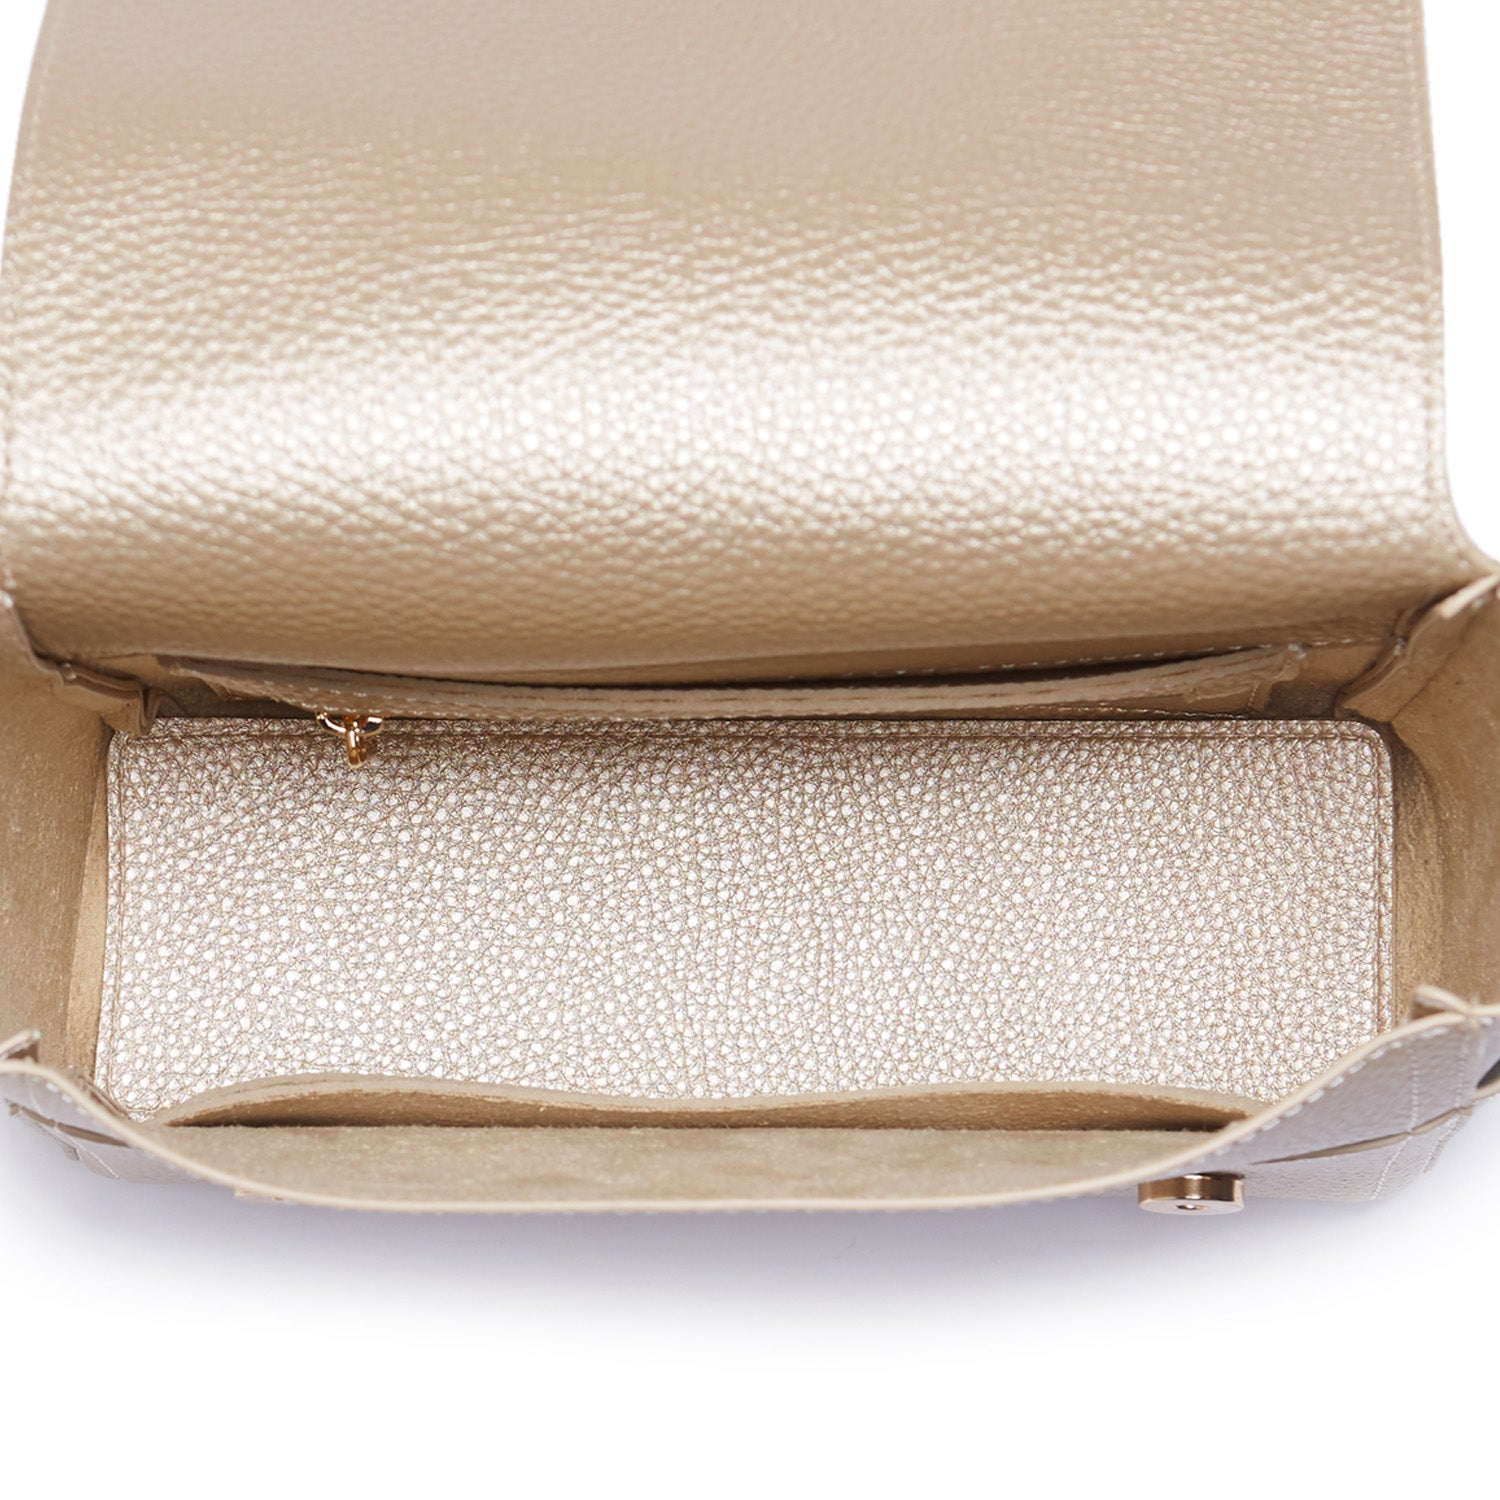 RIBAG SIGNATURE MINI - GOLD